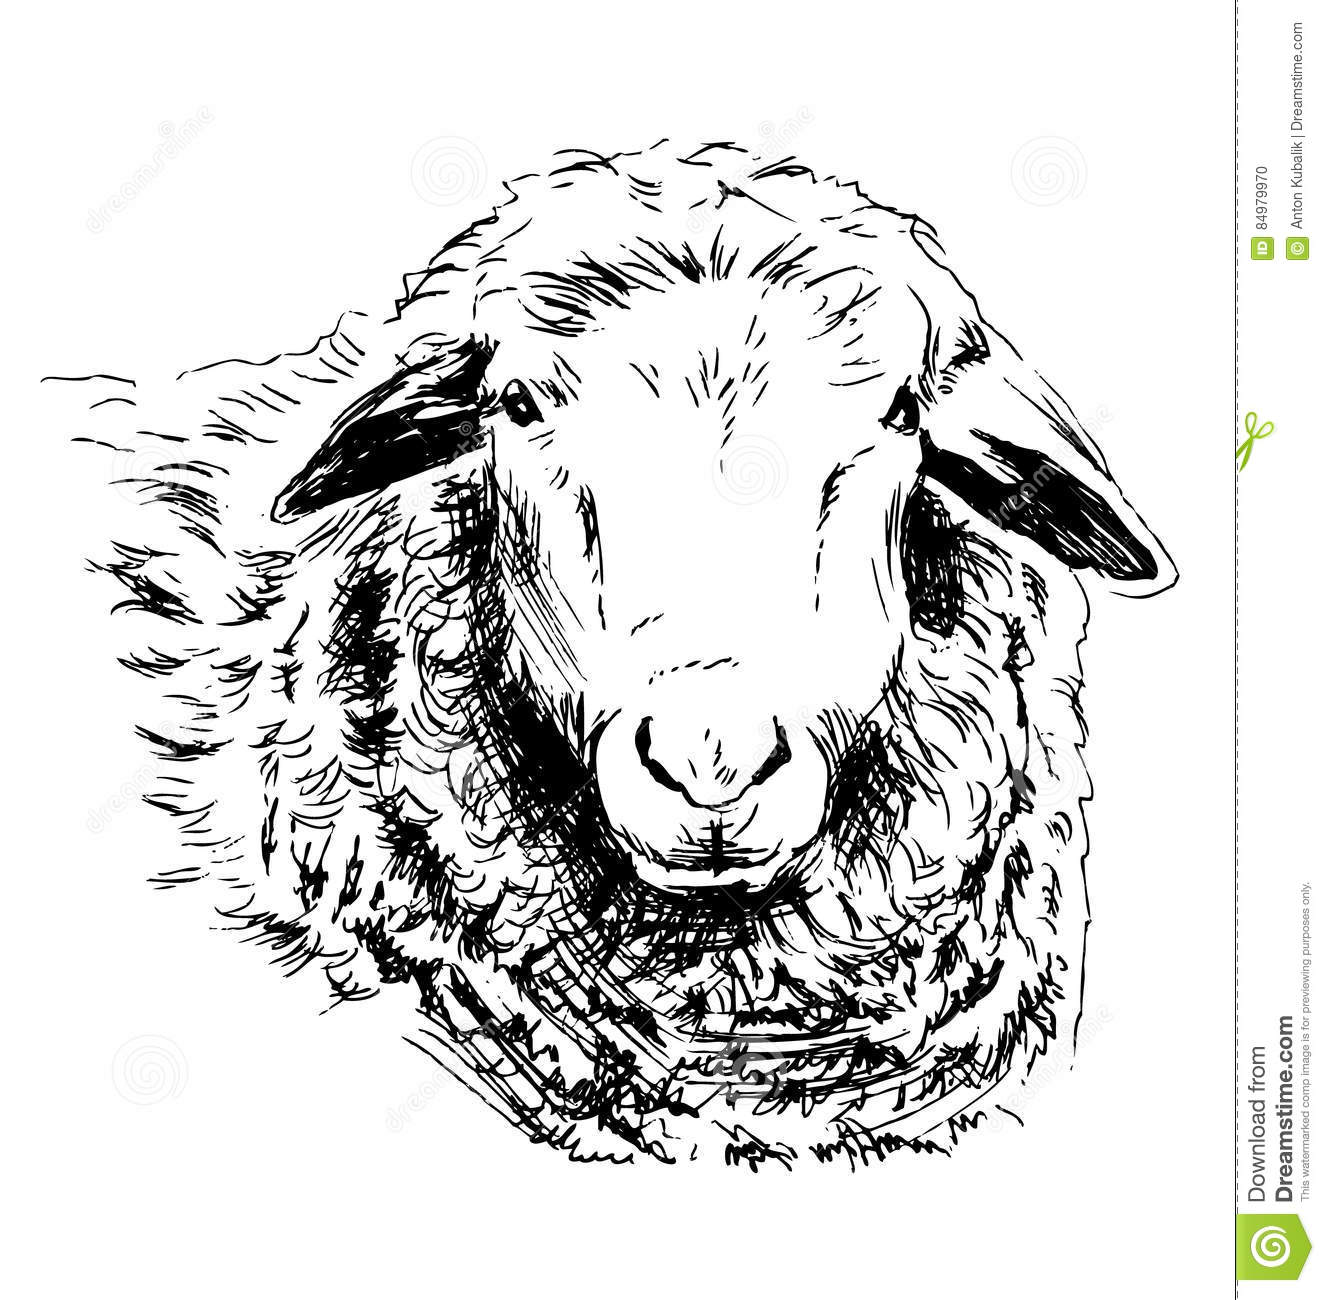 Line Drawing Of Sheep Face : Hand sketch head sheep stock vector illustration of farm